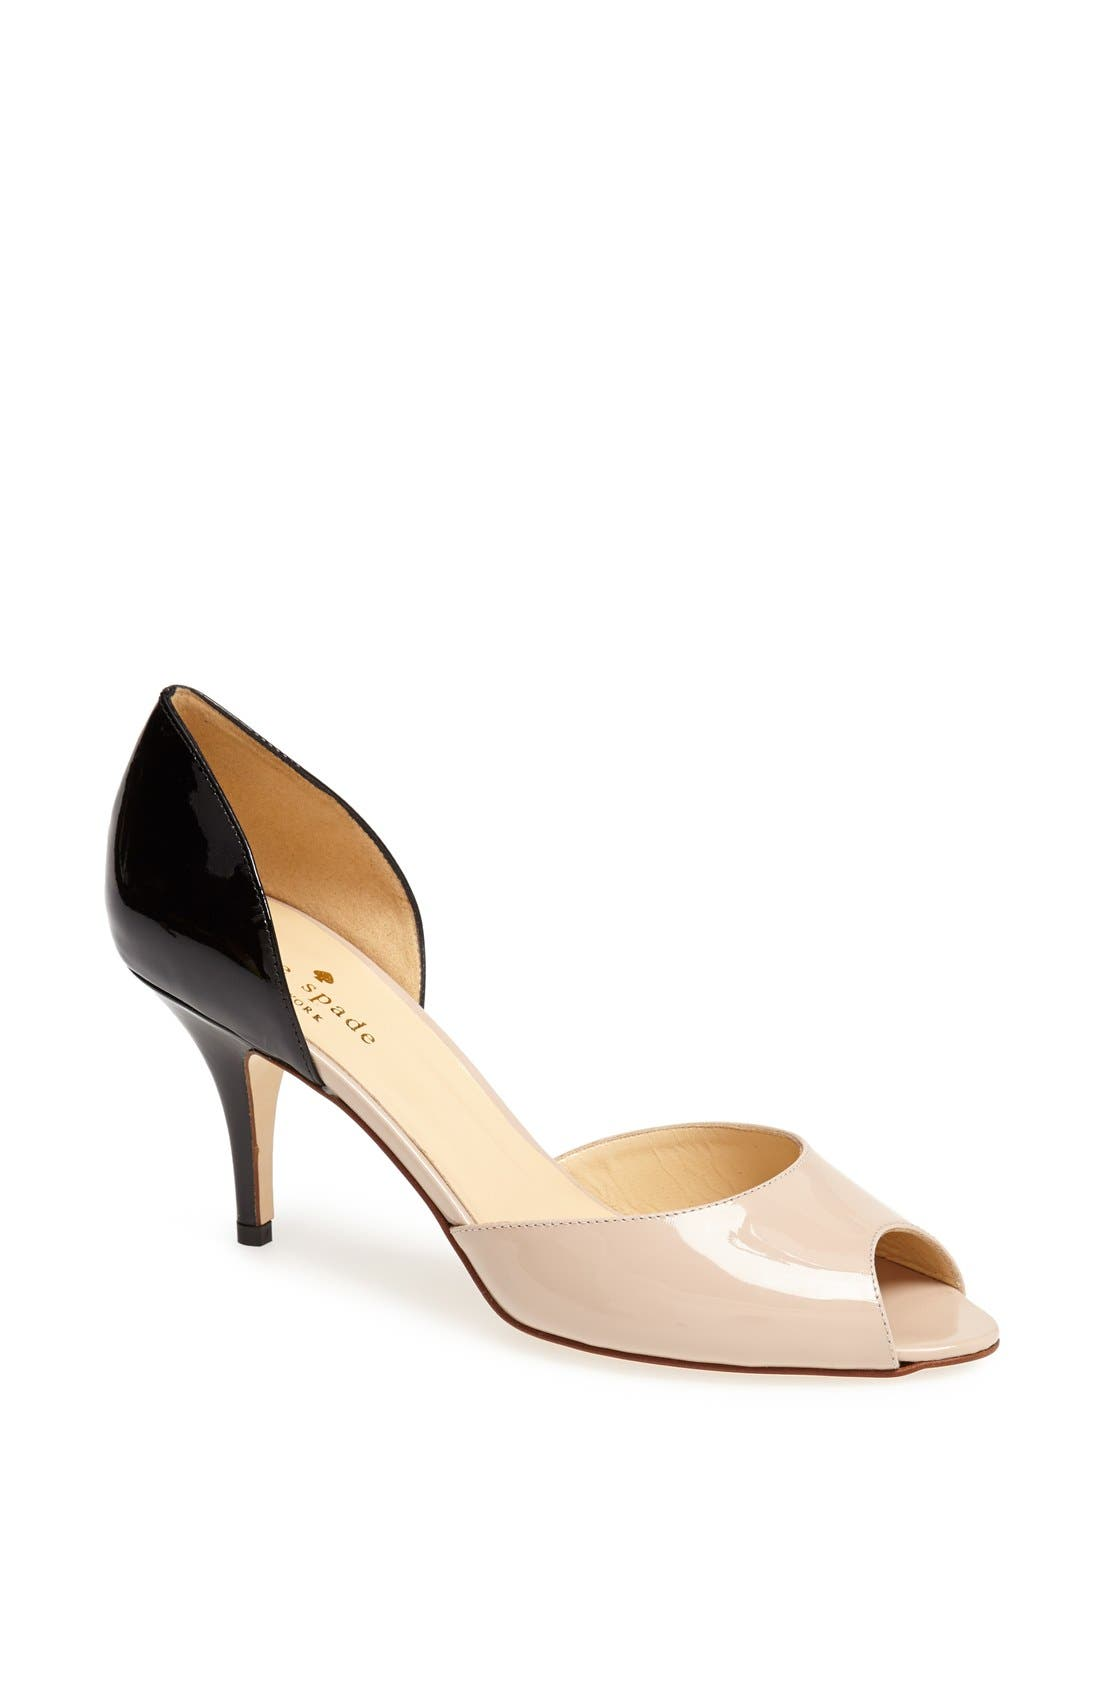 Alternate Image 1 Selected - kate spade new york 'sage' pump